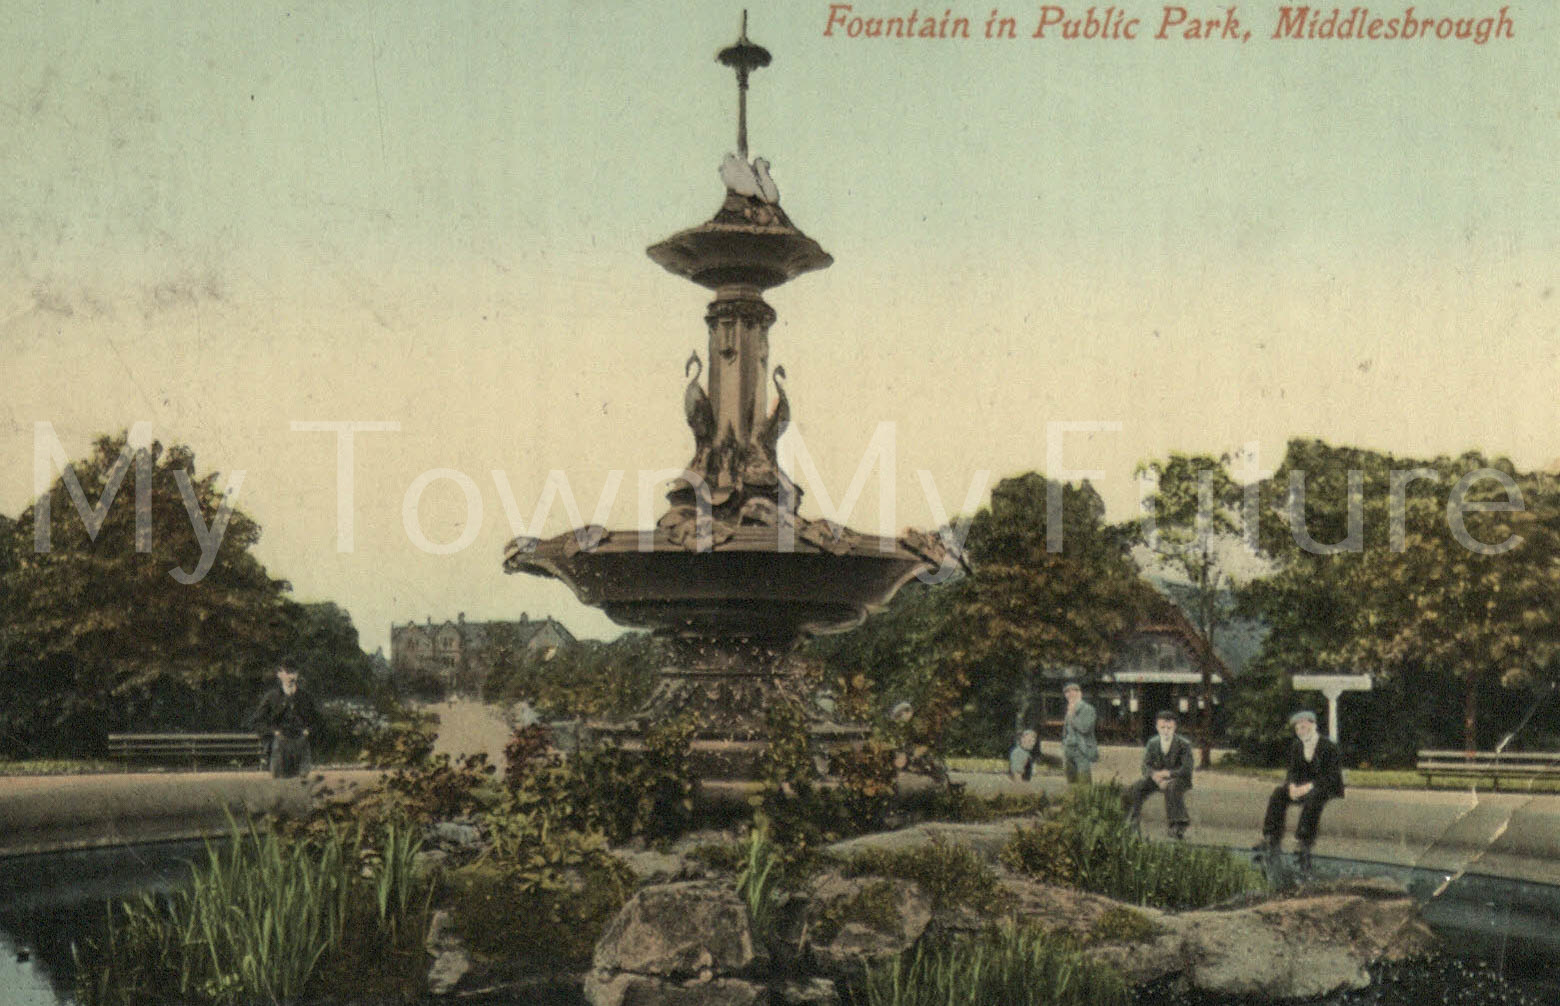 Albert Park - Fountain which was presented by Joseph Pease Esq. Postcard - to Mrs CH Lister - Valentine Series, Dundee